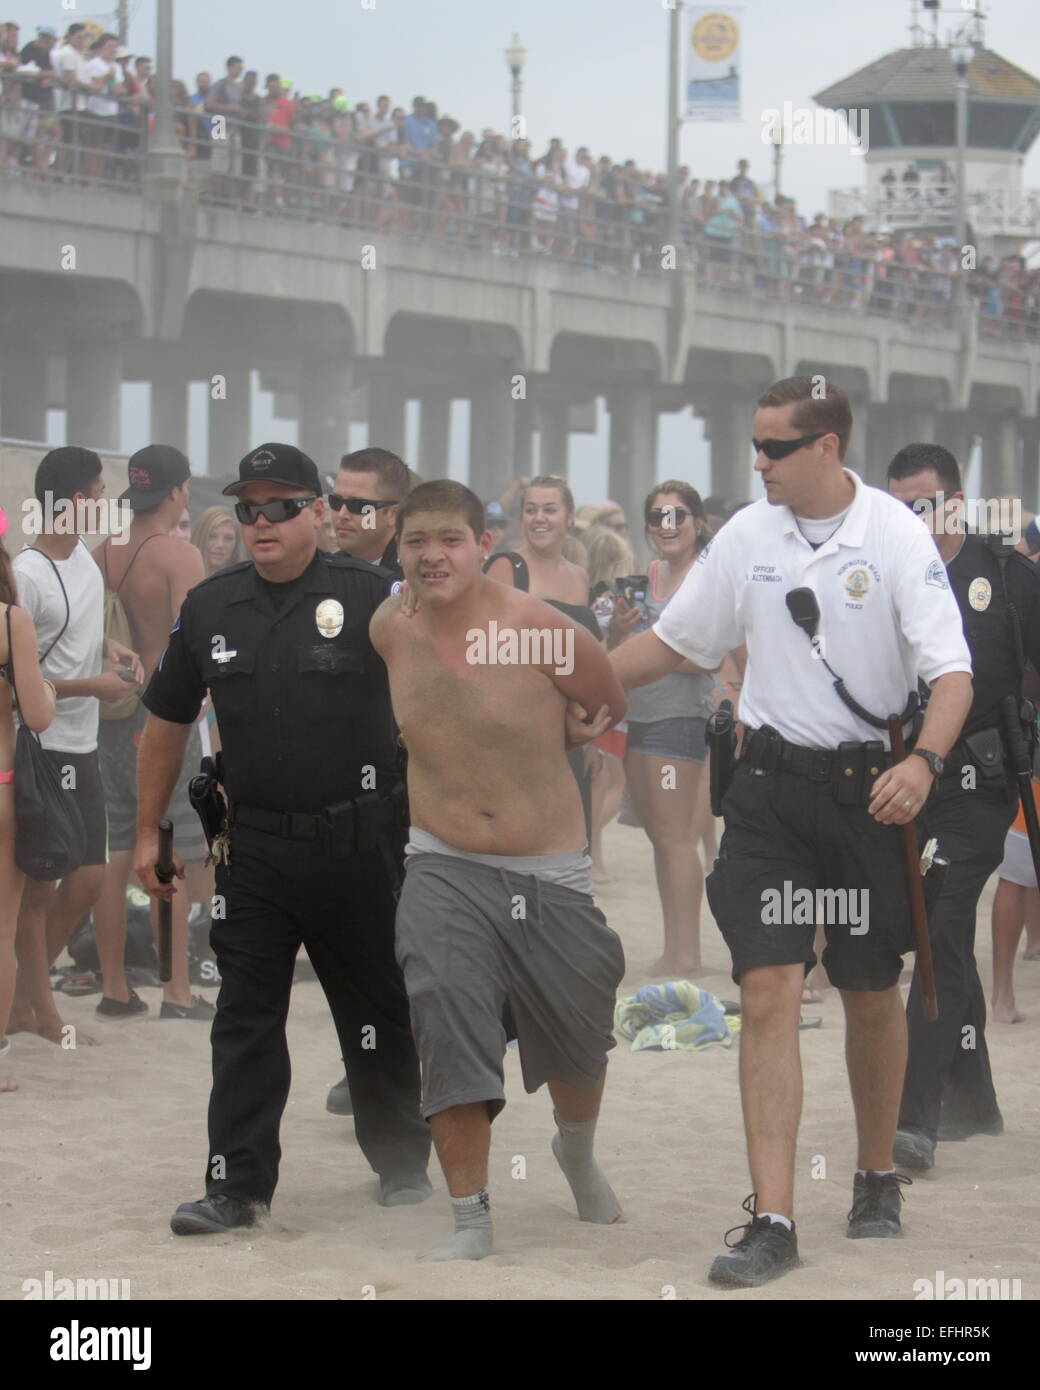 1757350d84 2014 Vans US Open of Surfing - Competition Finals Featuring  Guest Where   Huntington Beach